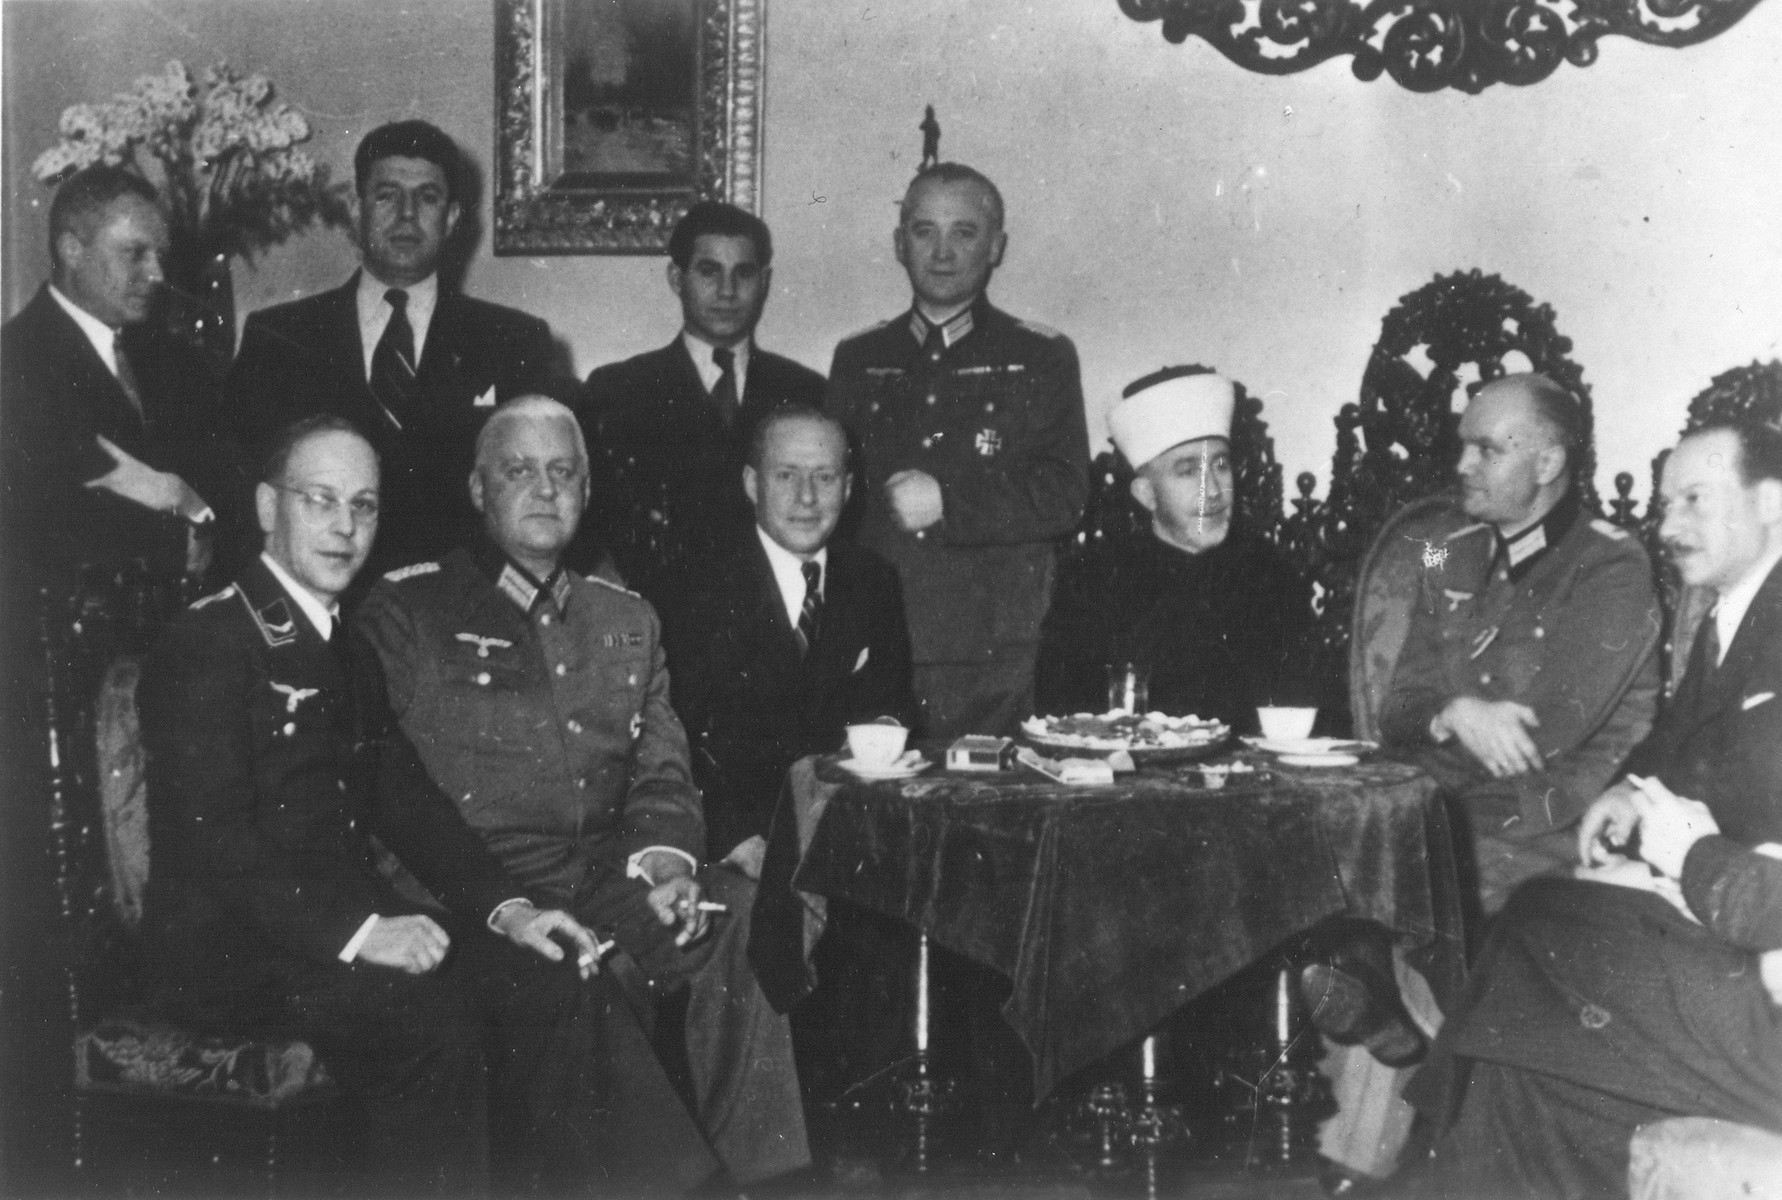 Former Mufti of Jerusalem Hajj Amin al-Husayni poses with Nazi officials at a reception in Berlin.